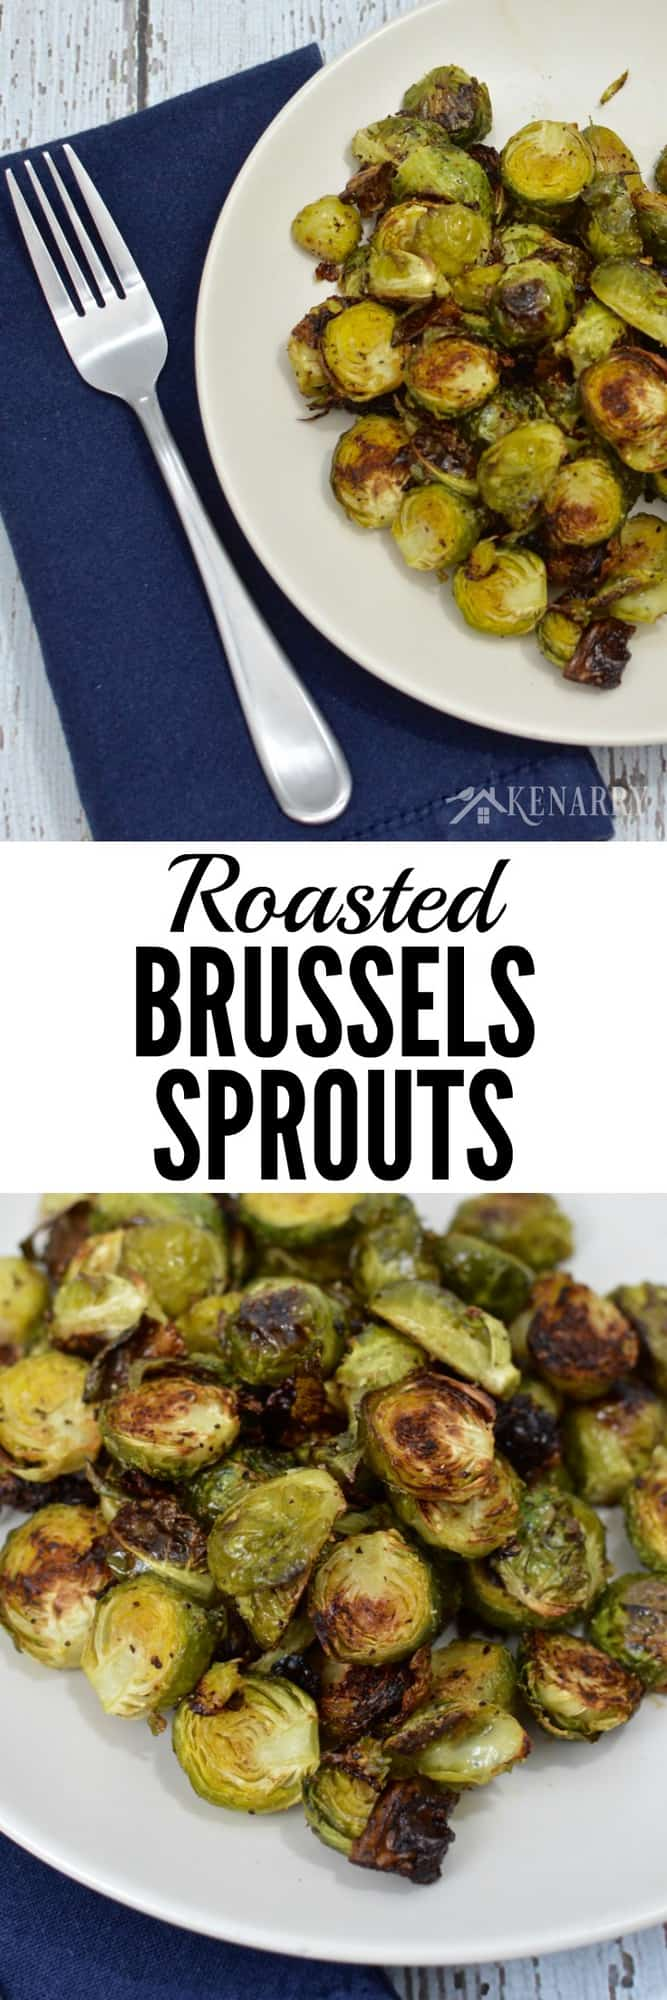 This Roasted Brussels Sprouts recipe is lightly seasoned and baked for a delicious side dish idea to go with any meal.